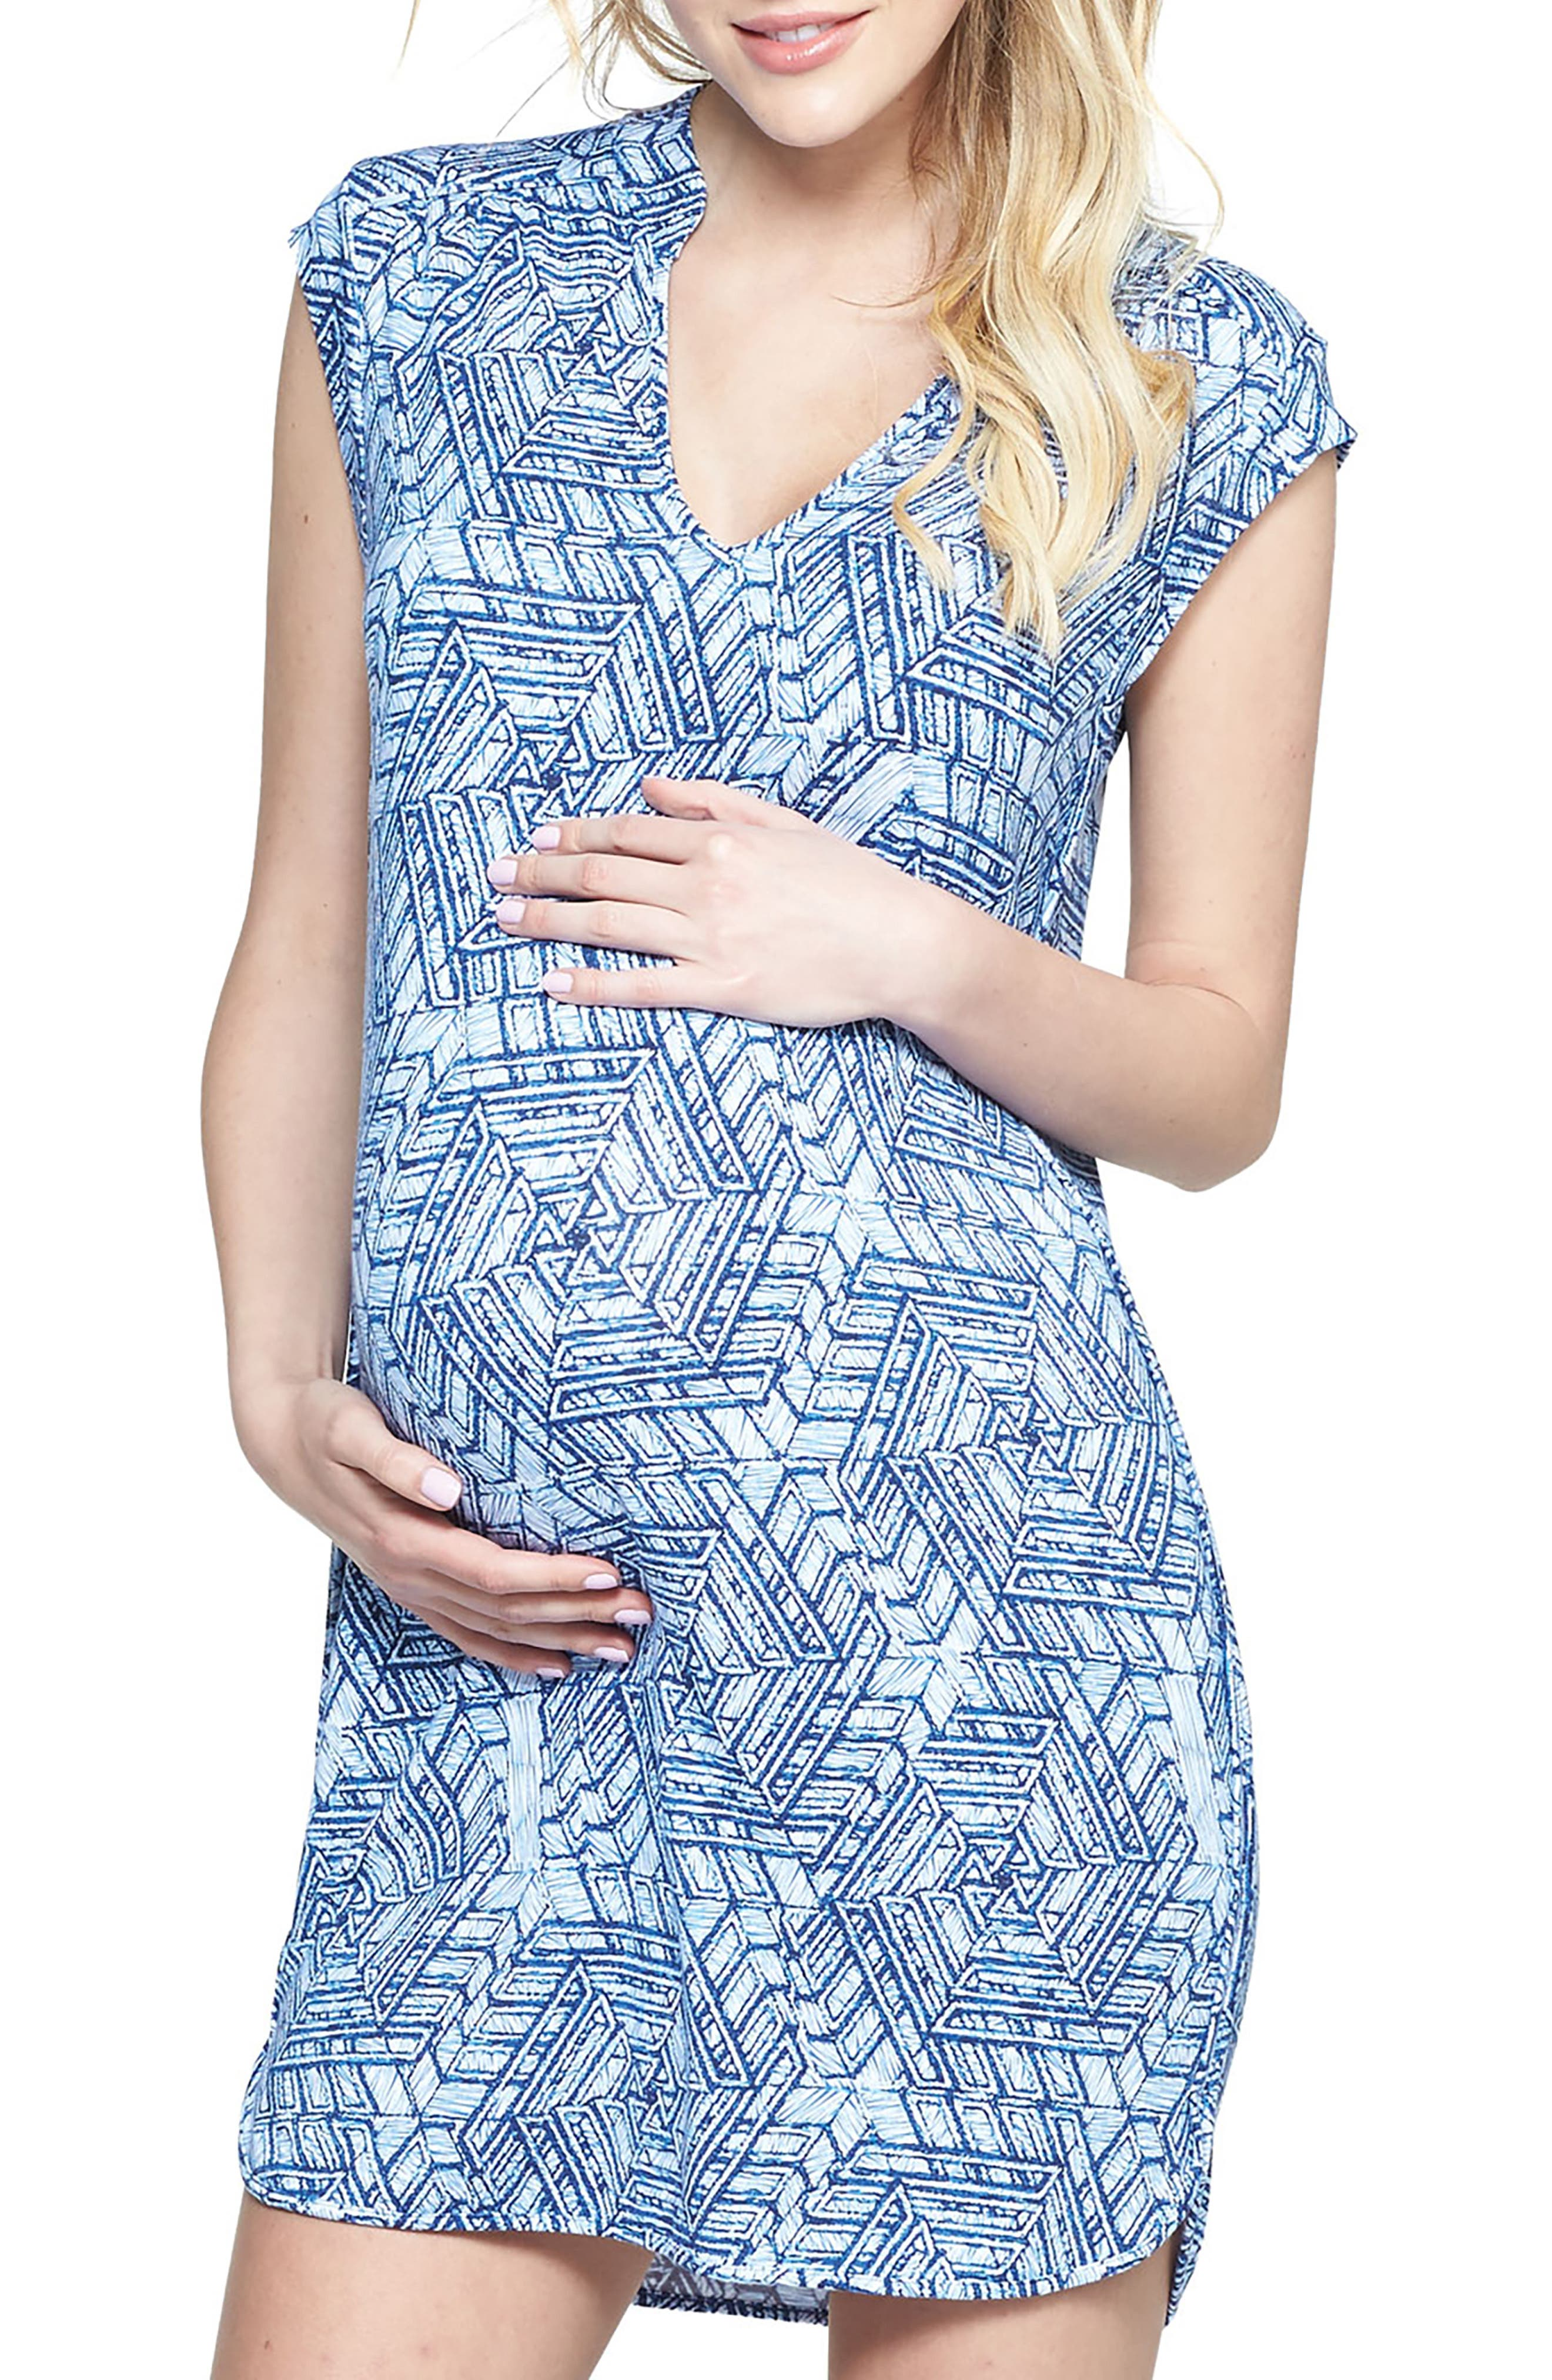 'Mellie' Embellished Neck Maternity Dress,                             Main thumbnail 1, color,                             SCRIBBLE GEO